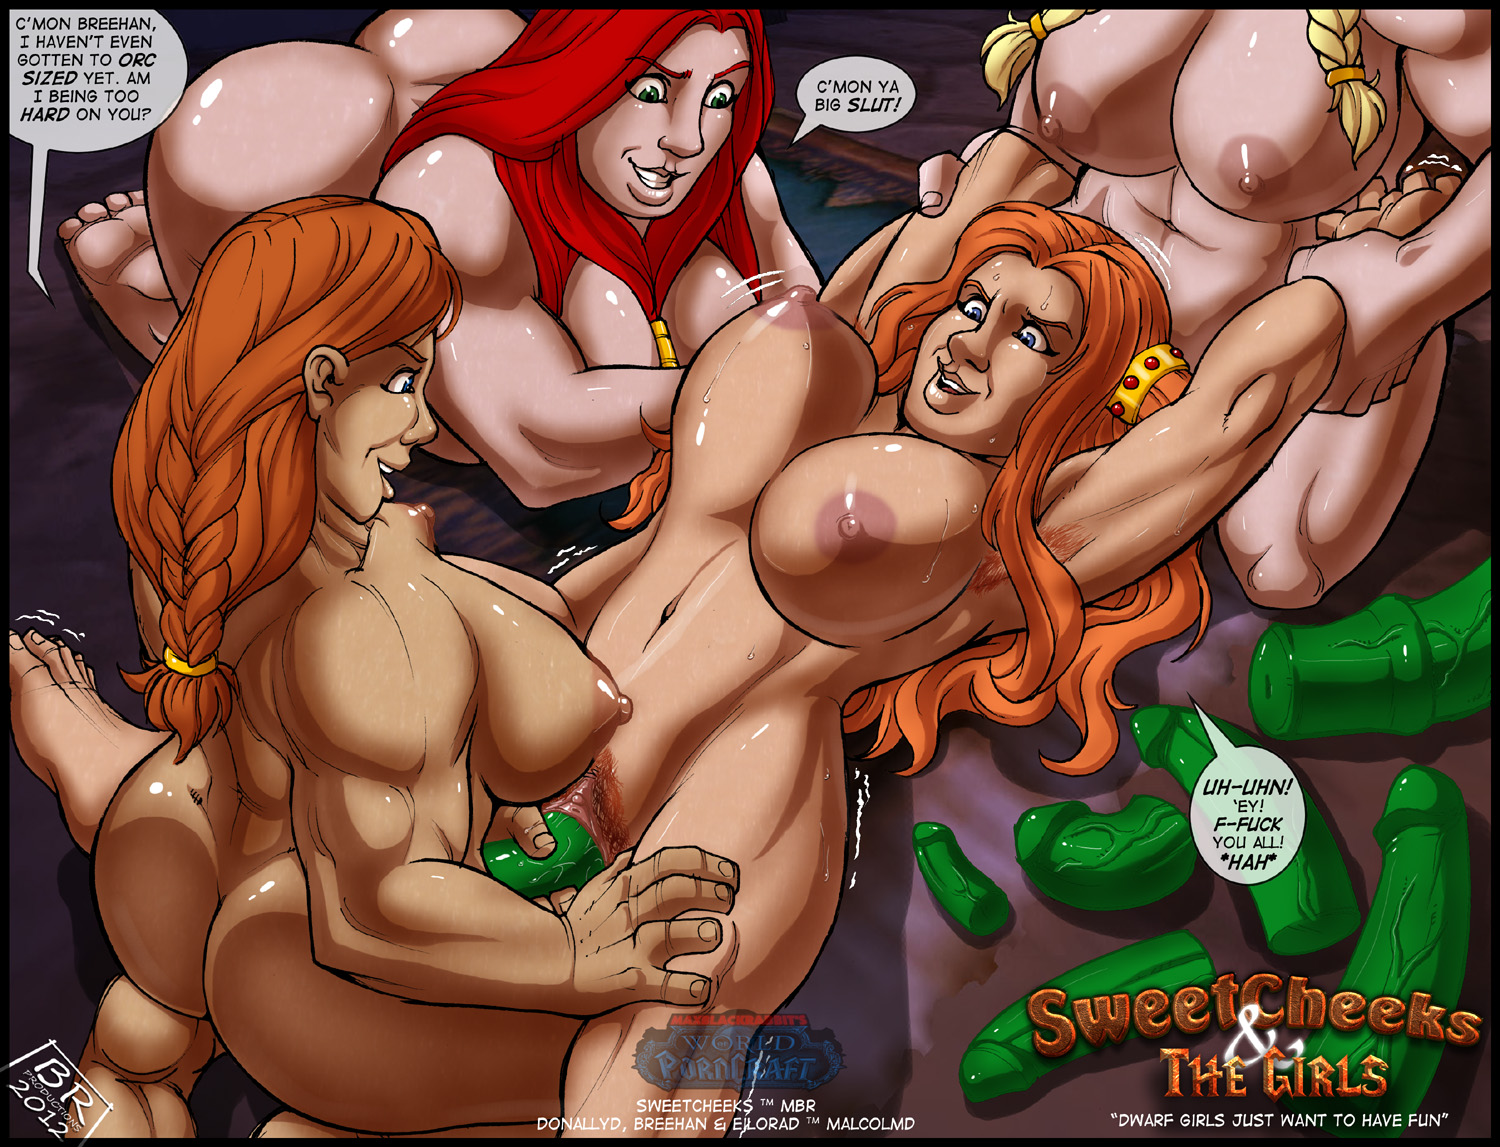 Hot female nude cartoon dwarf pics xxx picture